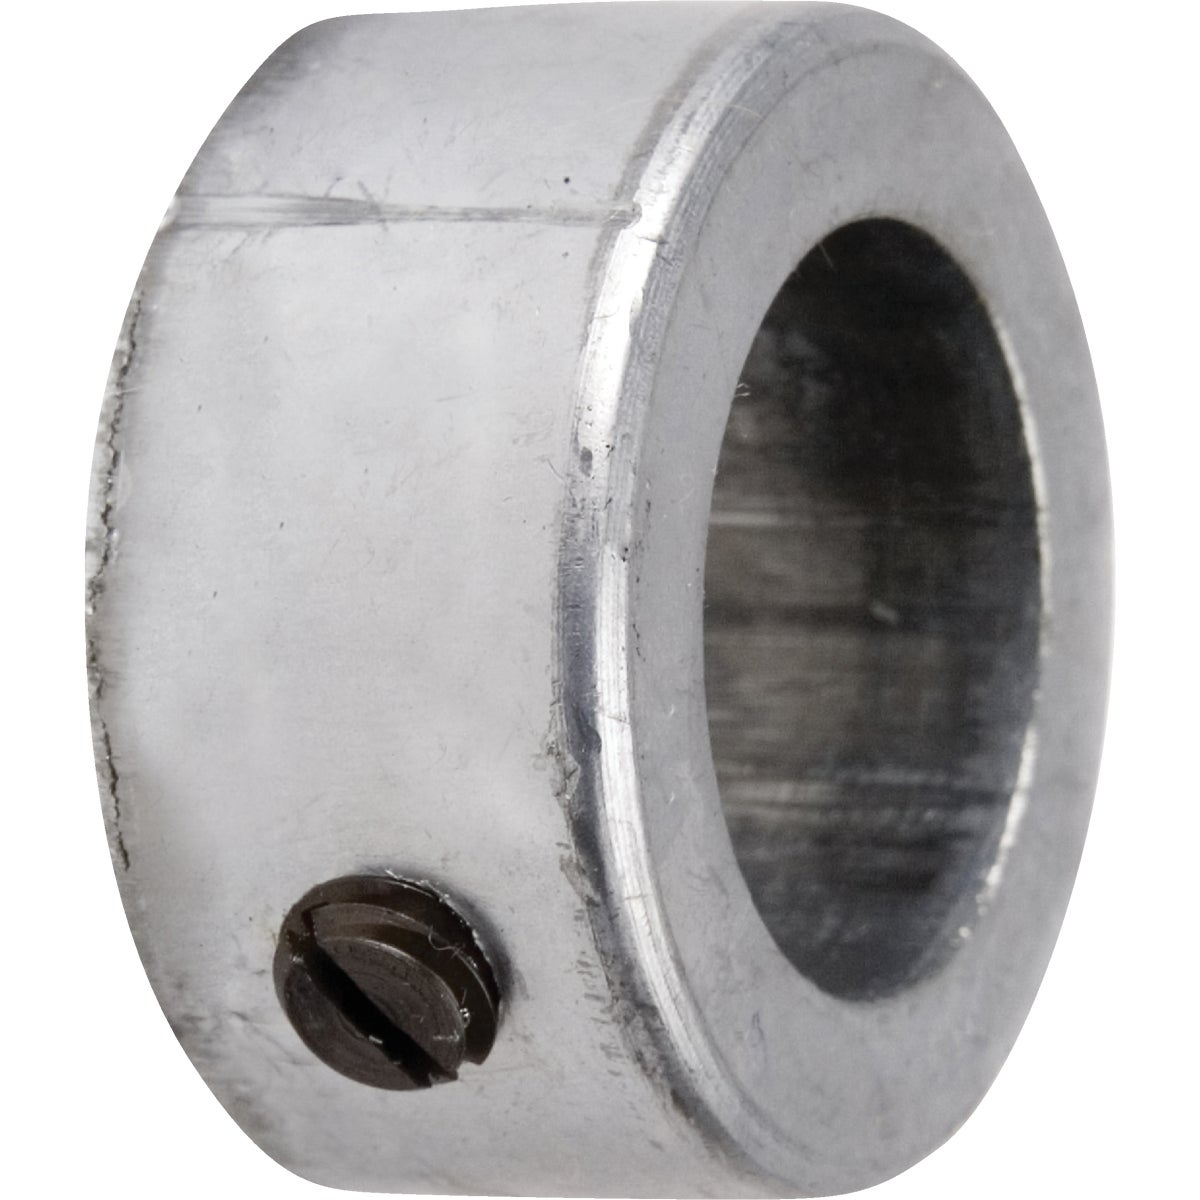 "1/4"" SHAFT COLLAR"